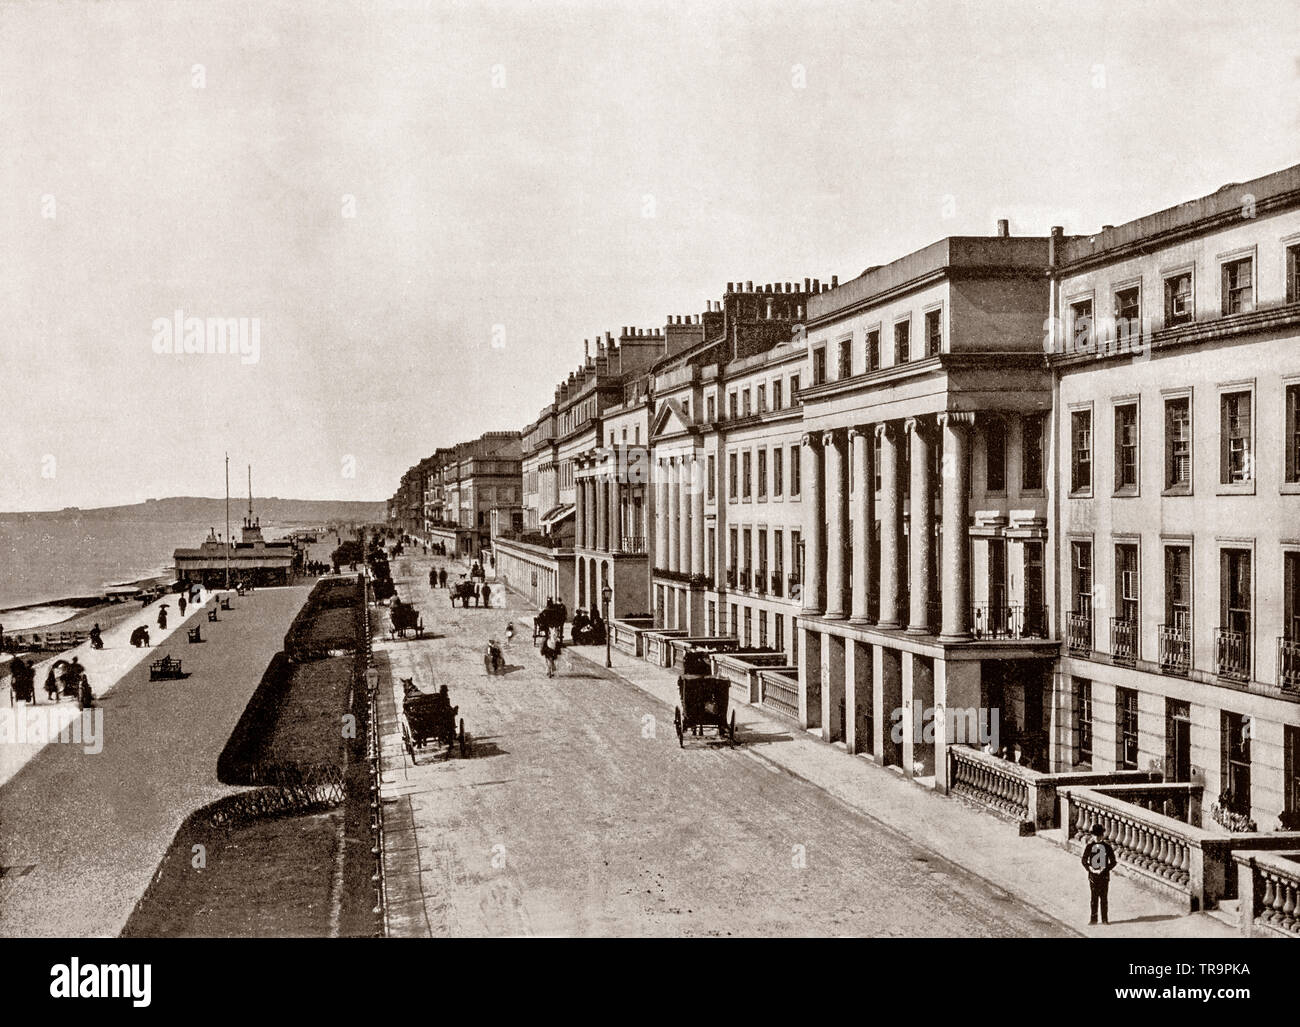 A 19th Century view of  the seafront of St Leonards-on-Sea (commonly known as St Leonards), East Sussex, England, part of Hastings since the late 19th century though it retains a sense of separate identity.  It was in 1875, that the two towns merged into the County Borough of Hastings, and by then the total seafront had reached some three miles in length. - Stock Image